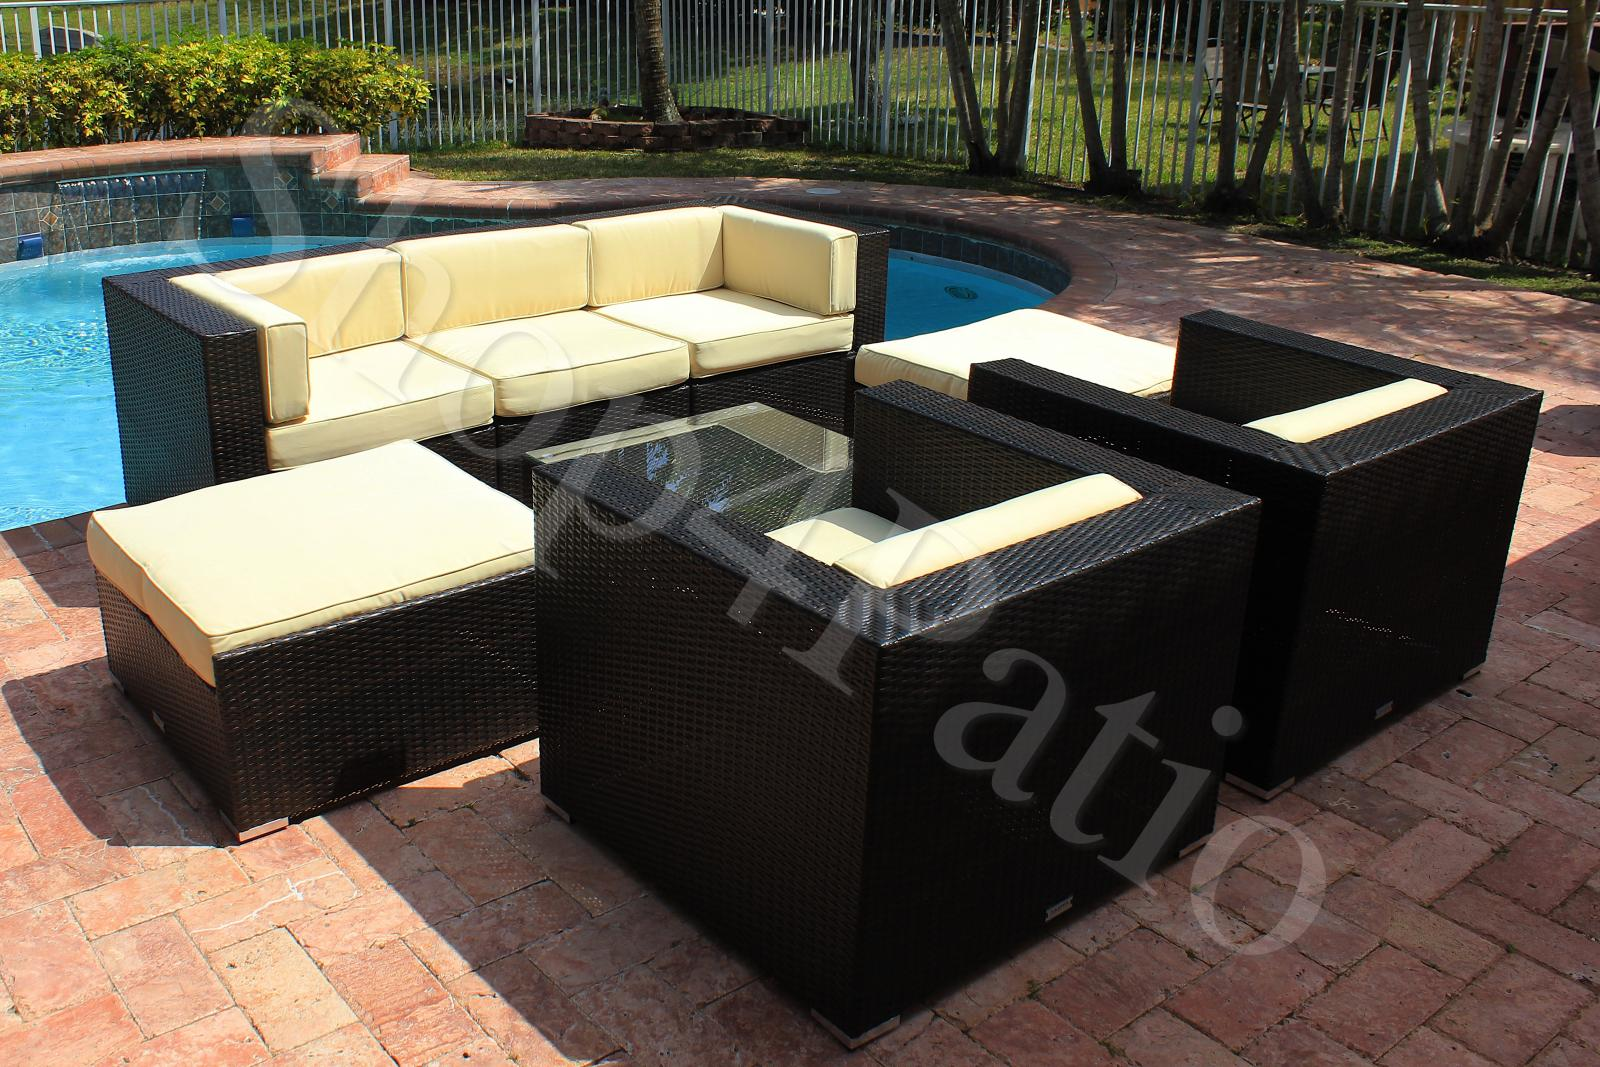 Patio Furniture 8 Piece Modern Garden Wicker Modular Sofa